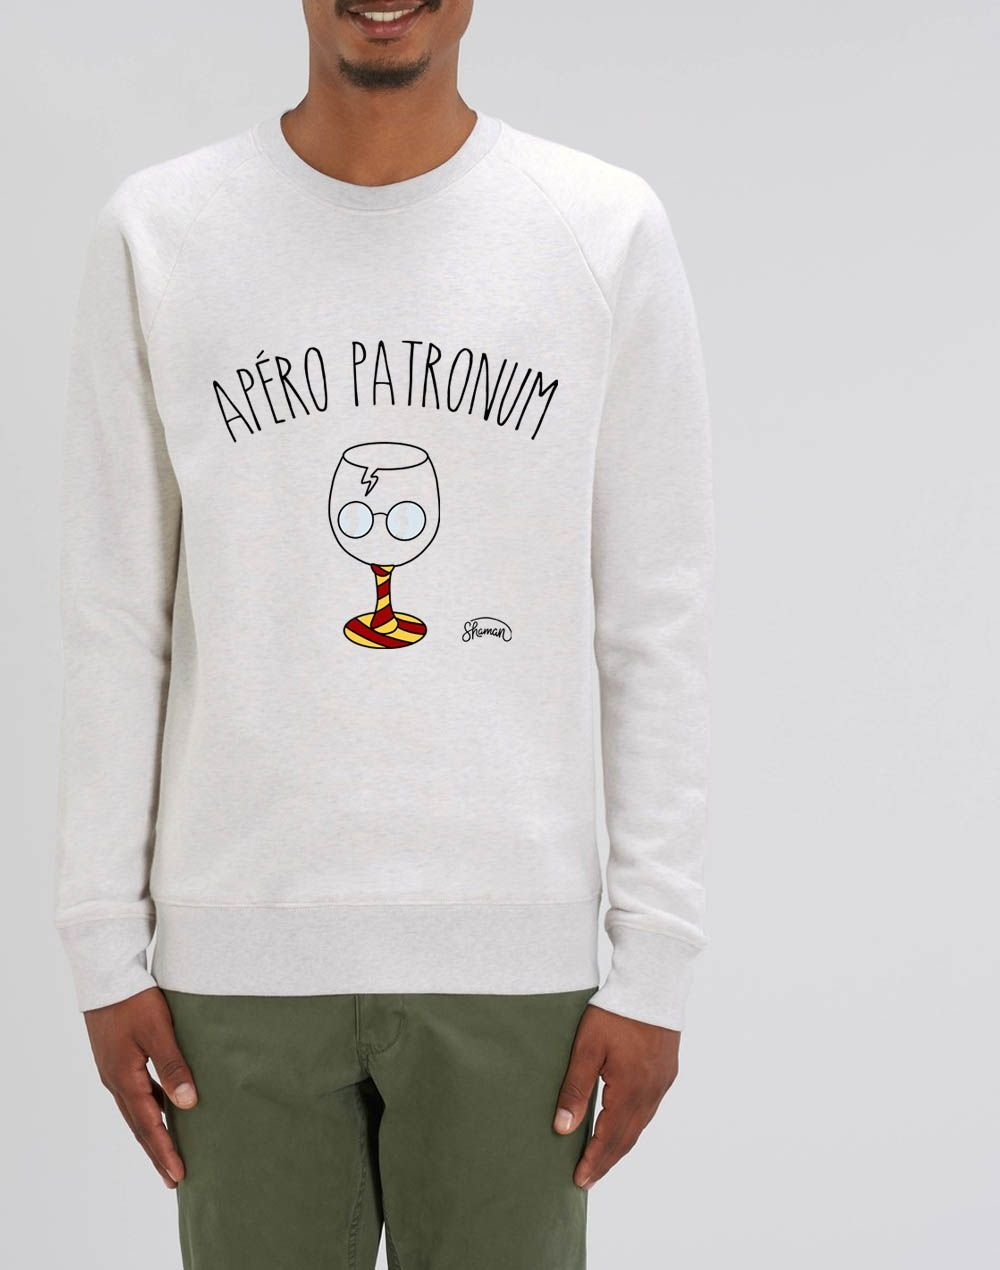 Sweat Apero Patronum